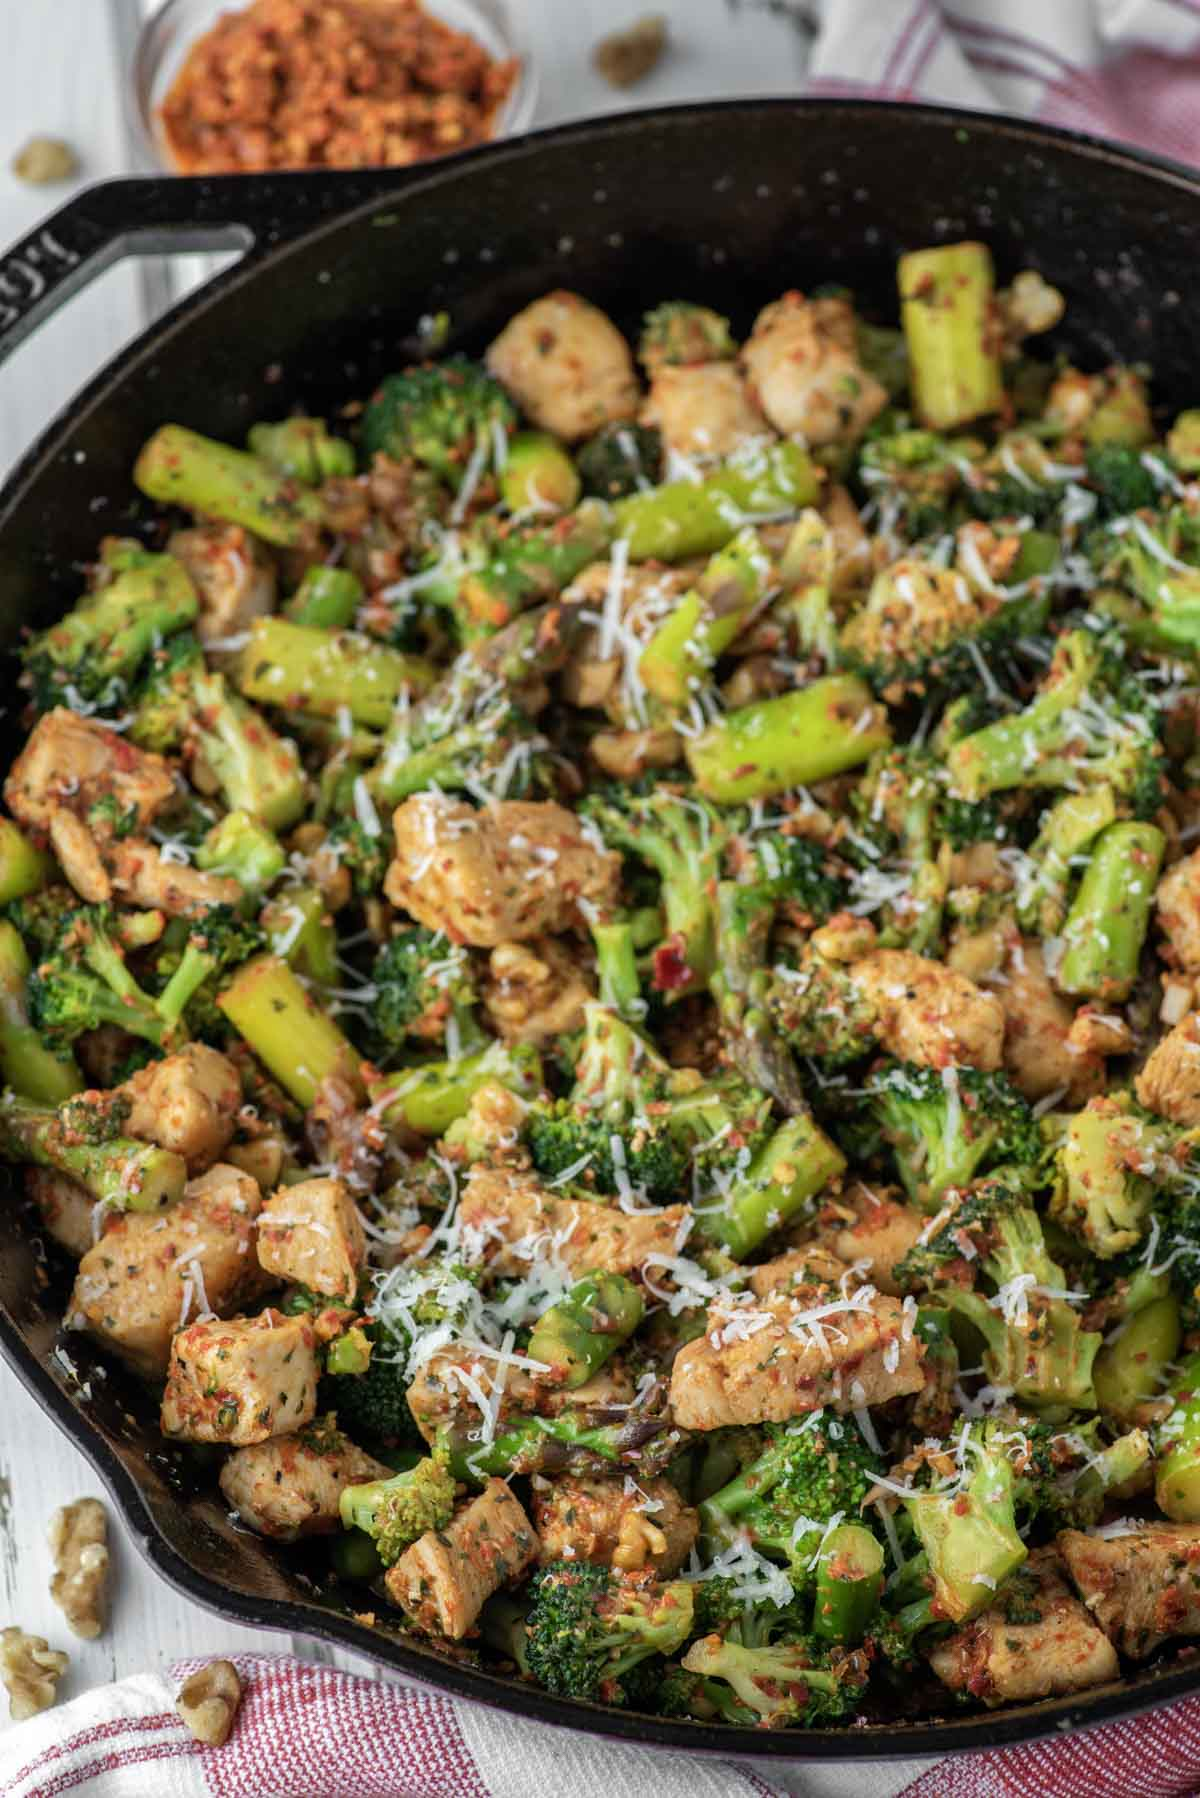 chicken and veggies in skillet